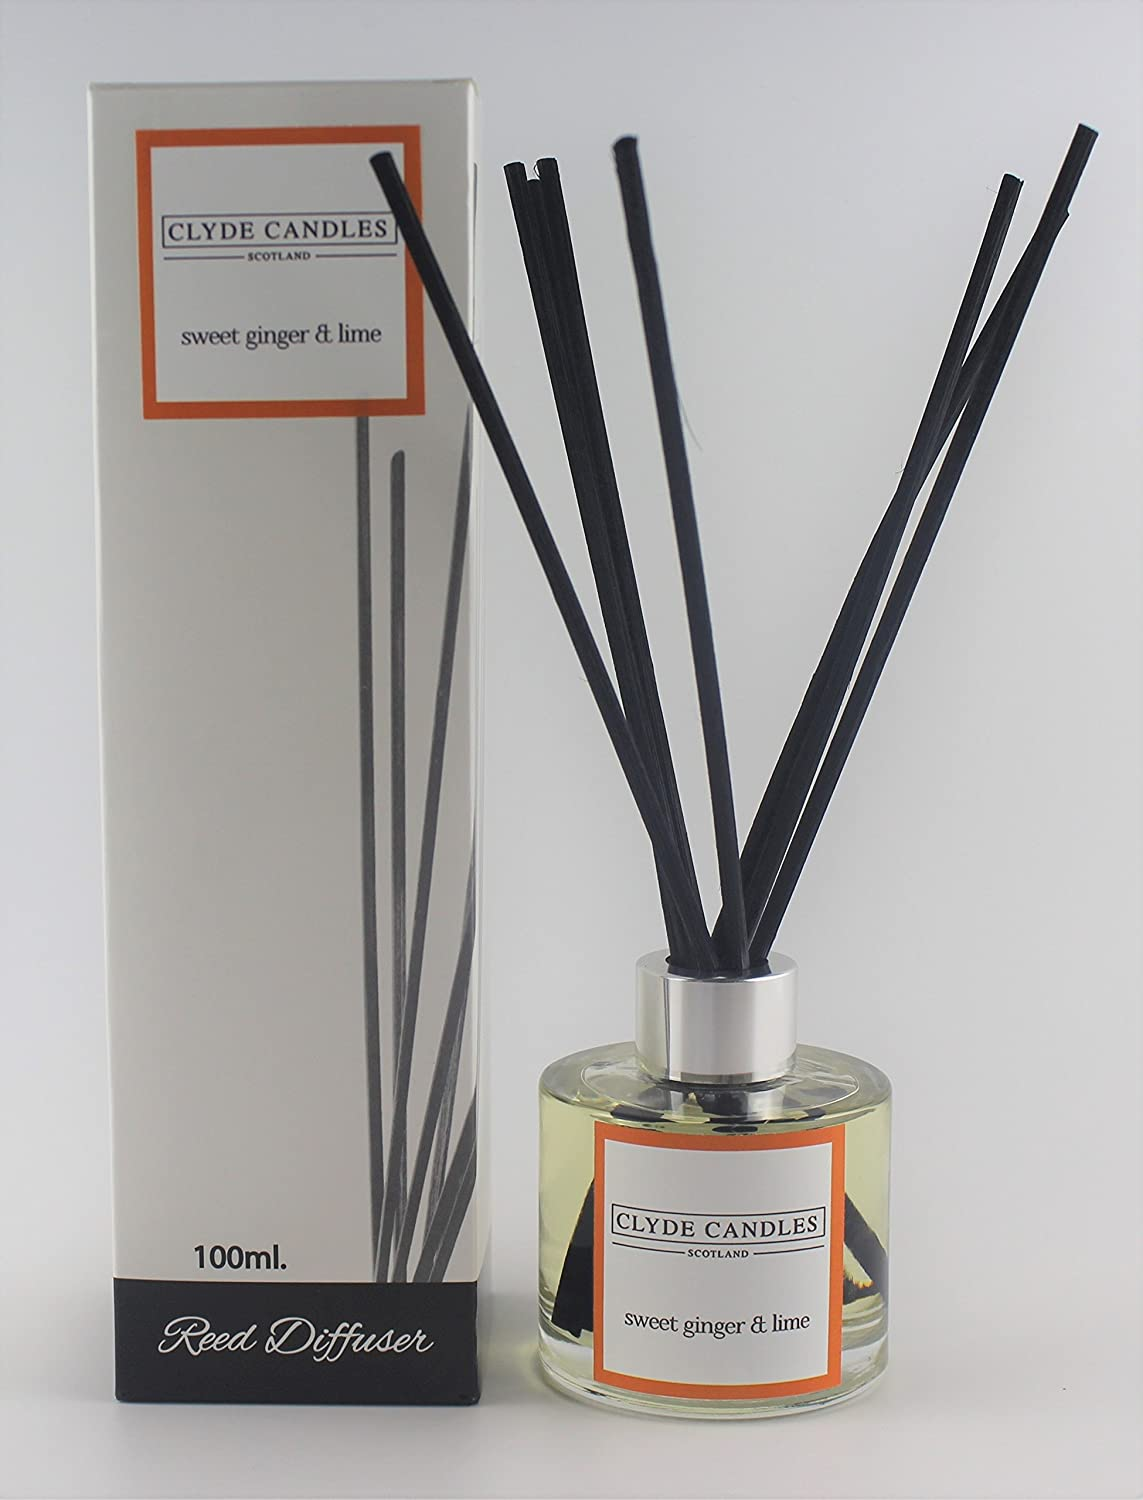 Sweet Ginger & Lime Reed Diffuser - Clyde Candles: Amazon.co.uk ...